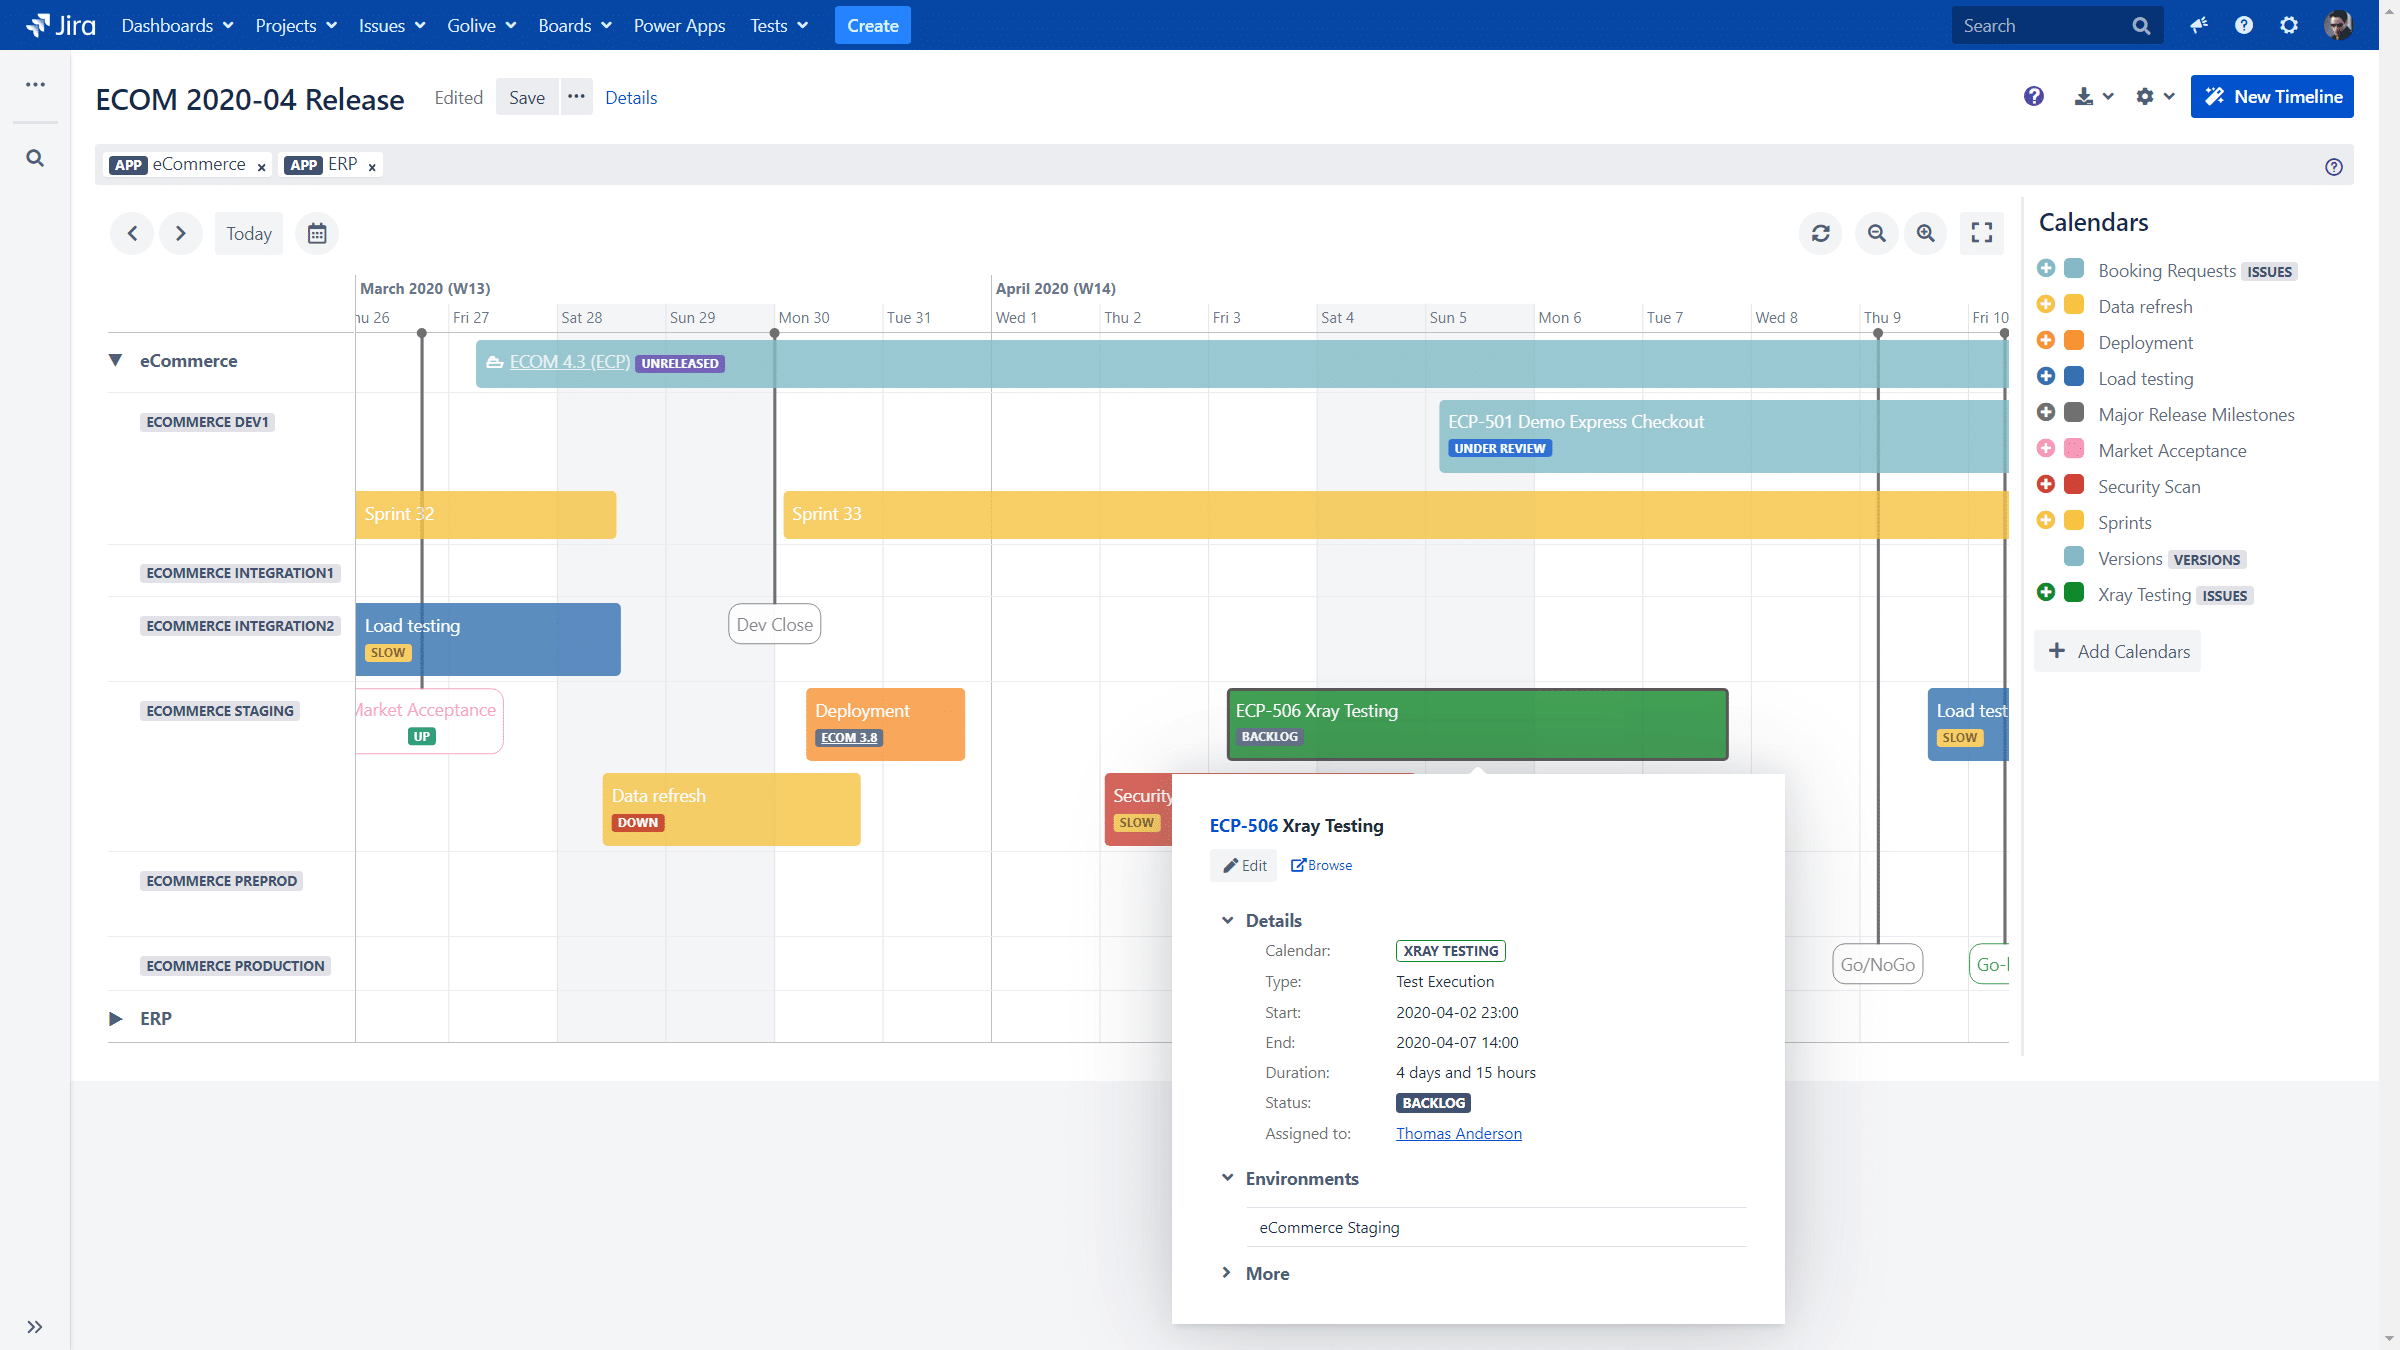 Timeline to show all Environment Activities with Jira and Golive